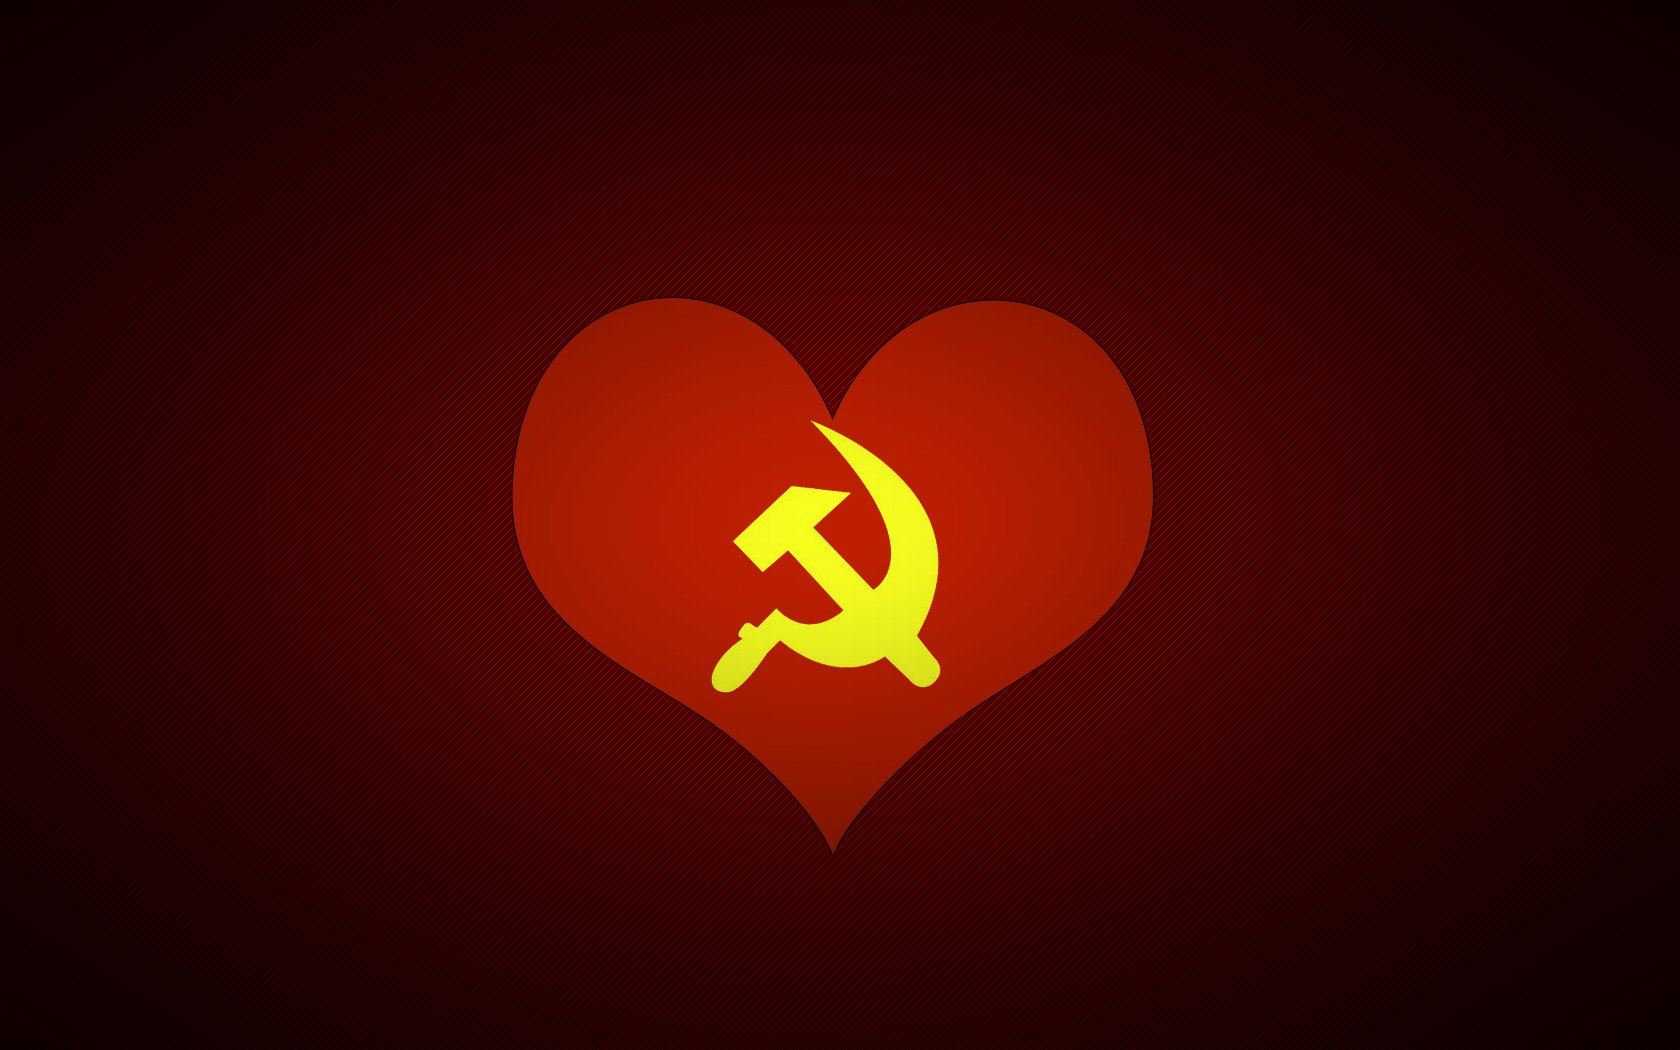 Communism Wallpaper and Background Image | 1680x1050 | ID ...